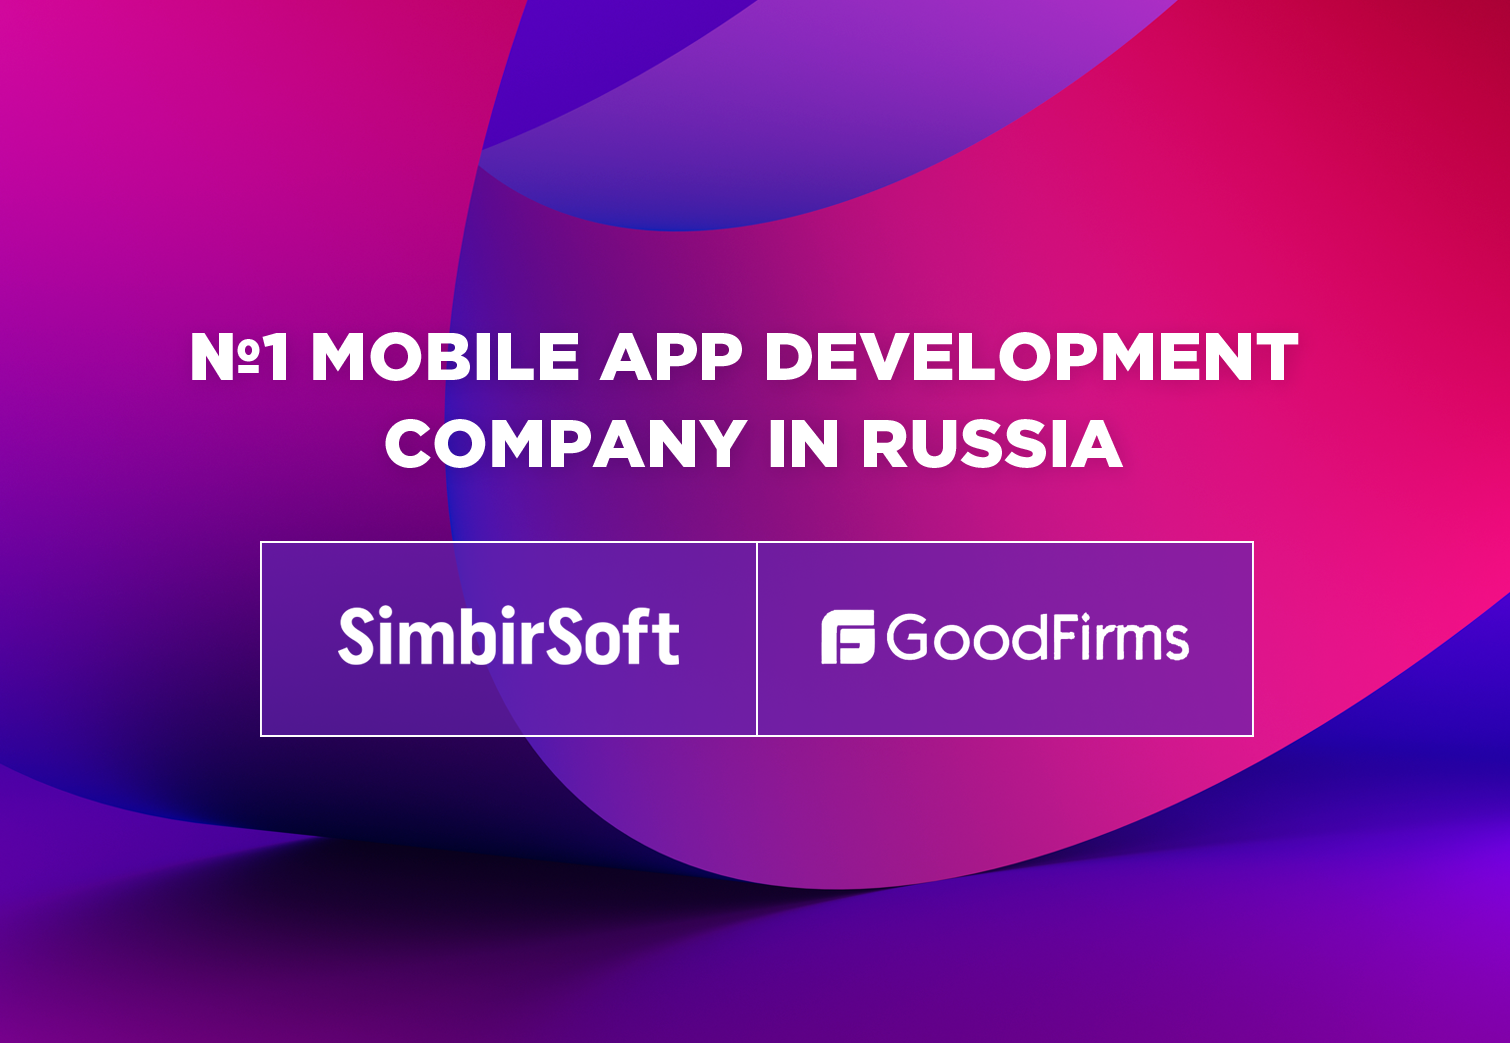 SimbirSoft is a Leader of Mobile Development in Russia According to GoodFirms